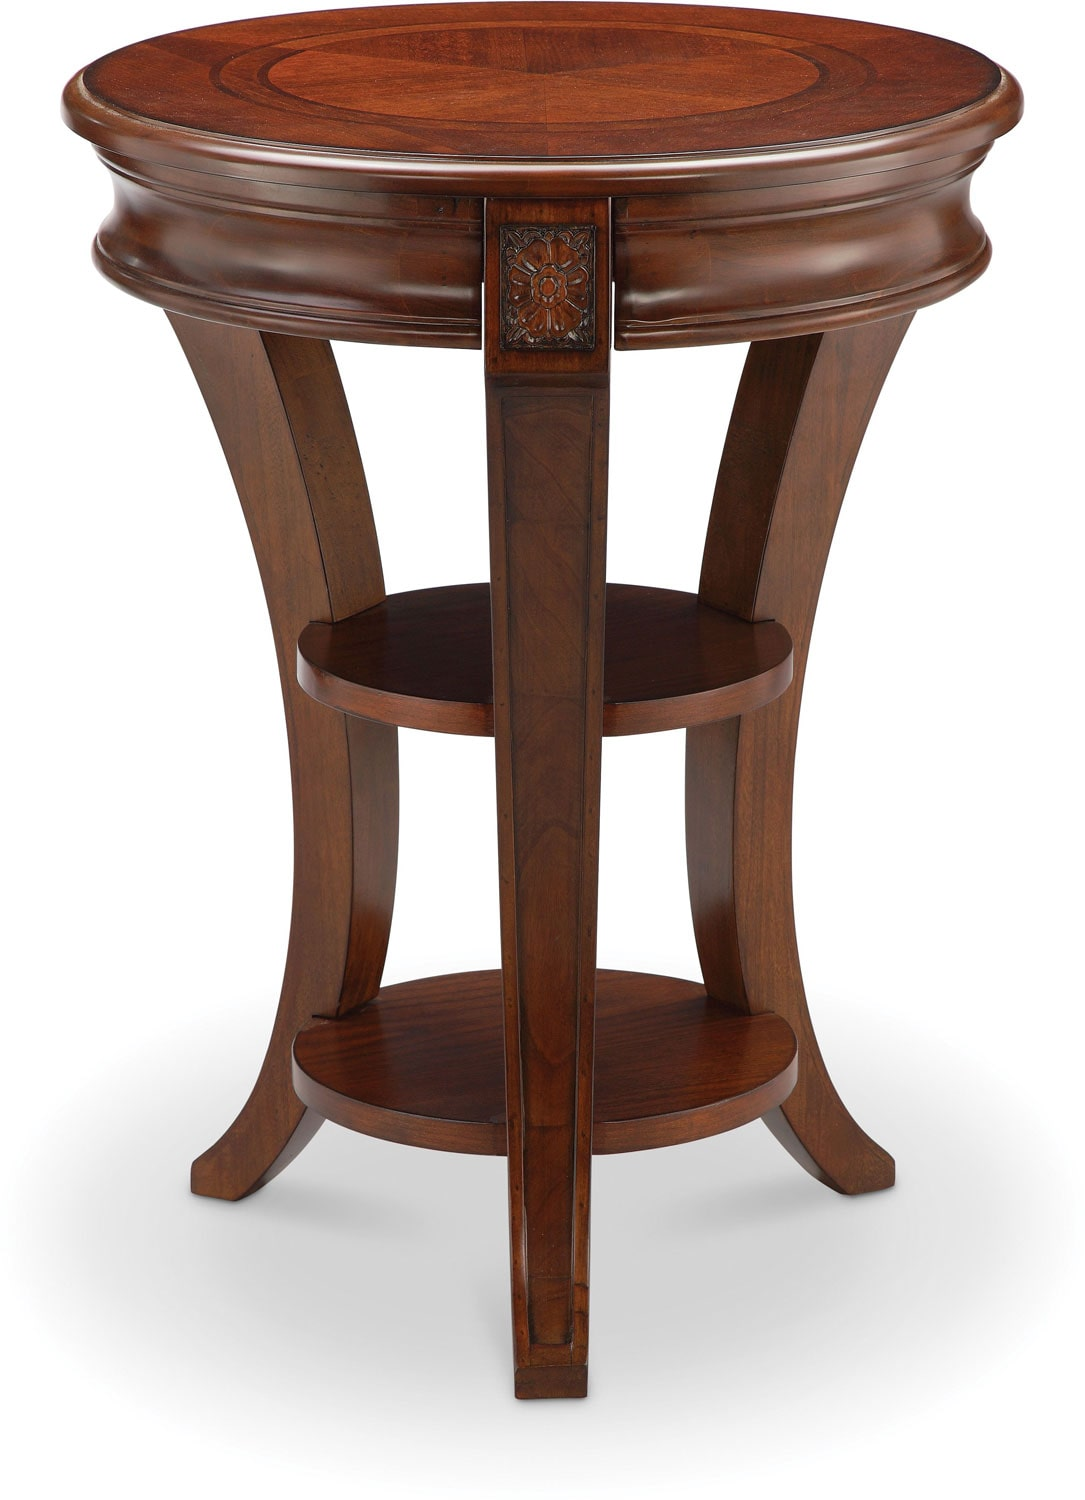 Winslet Chairside Table - Cherry